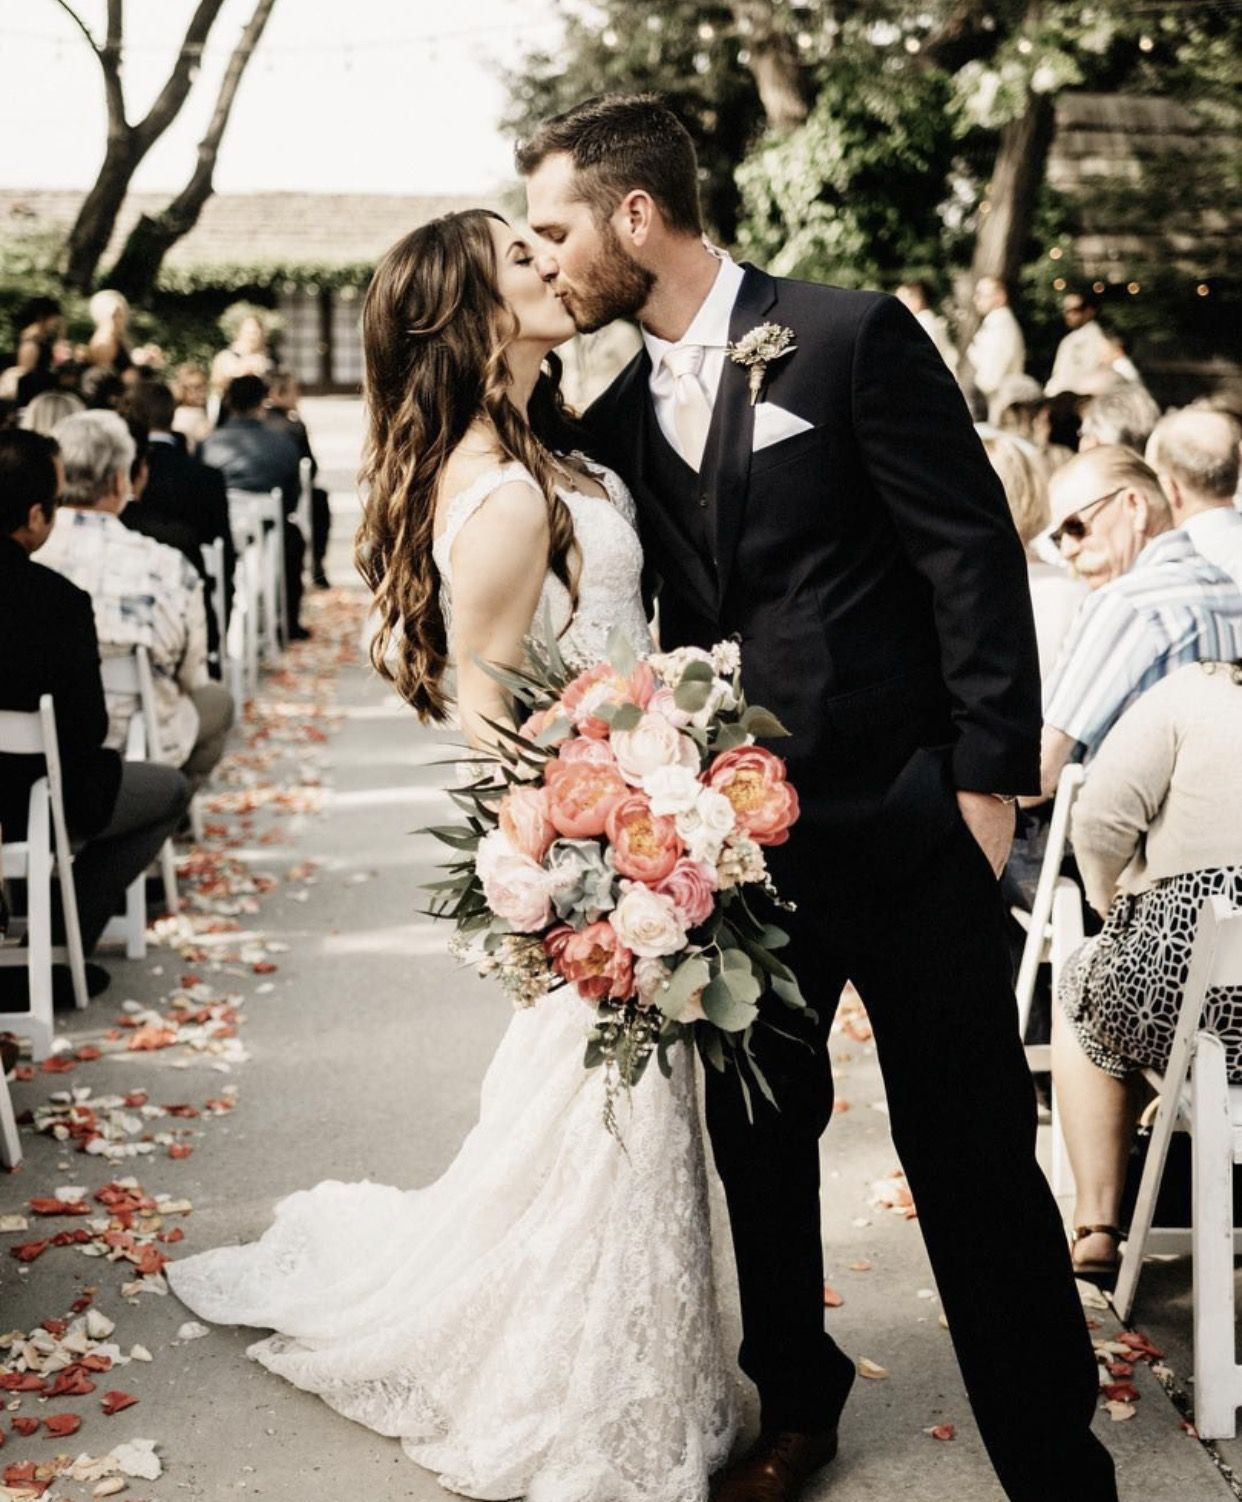 13 meaningful wedding gift ideas wedding gifts for bride